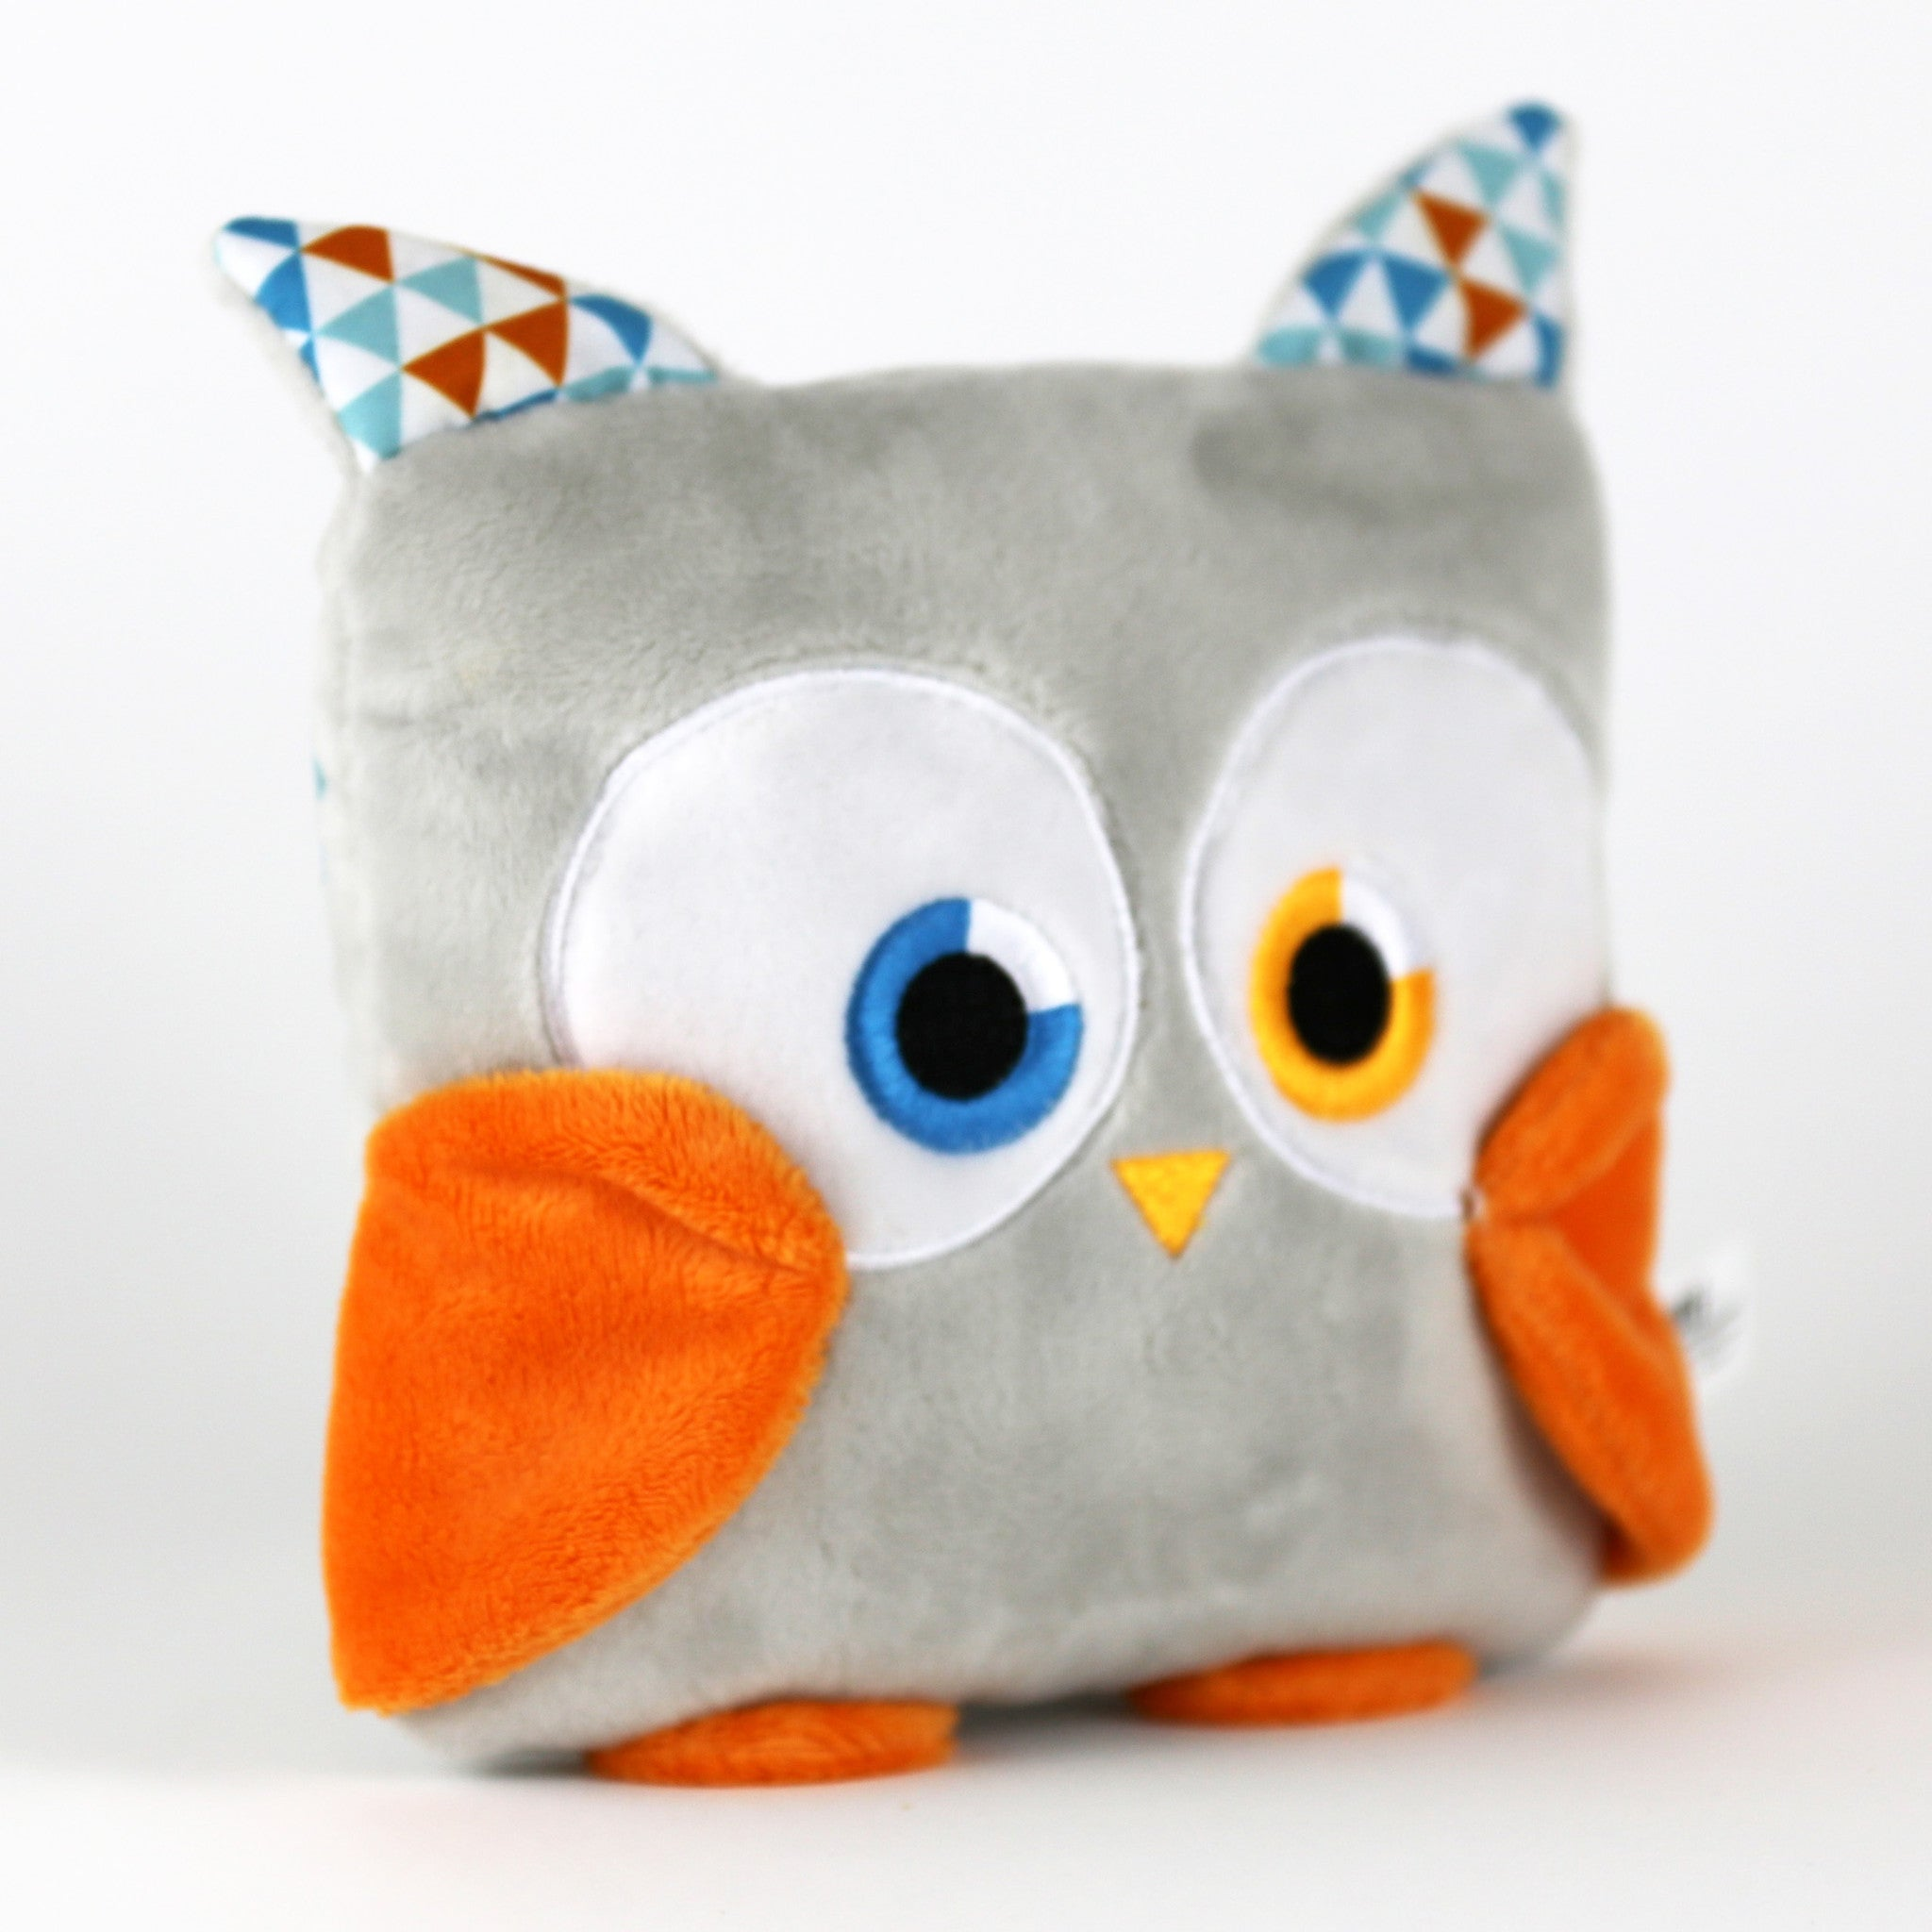 Poketti plush toy owl stuffed animal bird with a useful back pocket